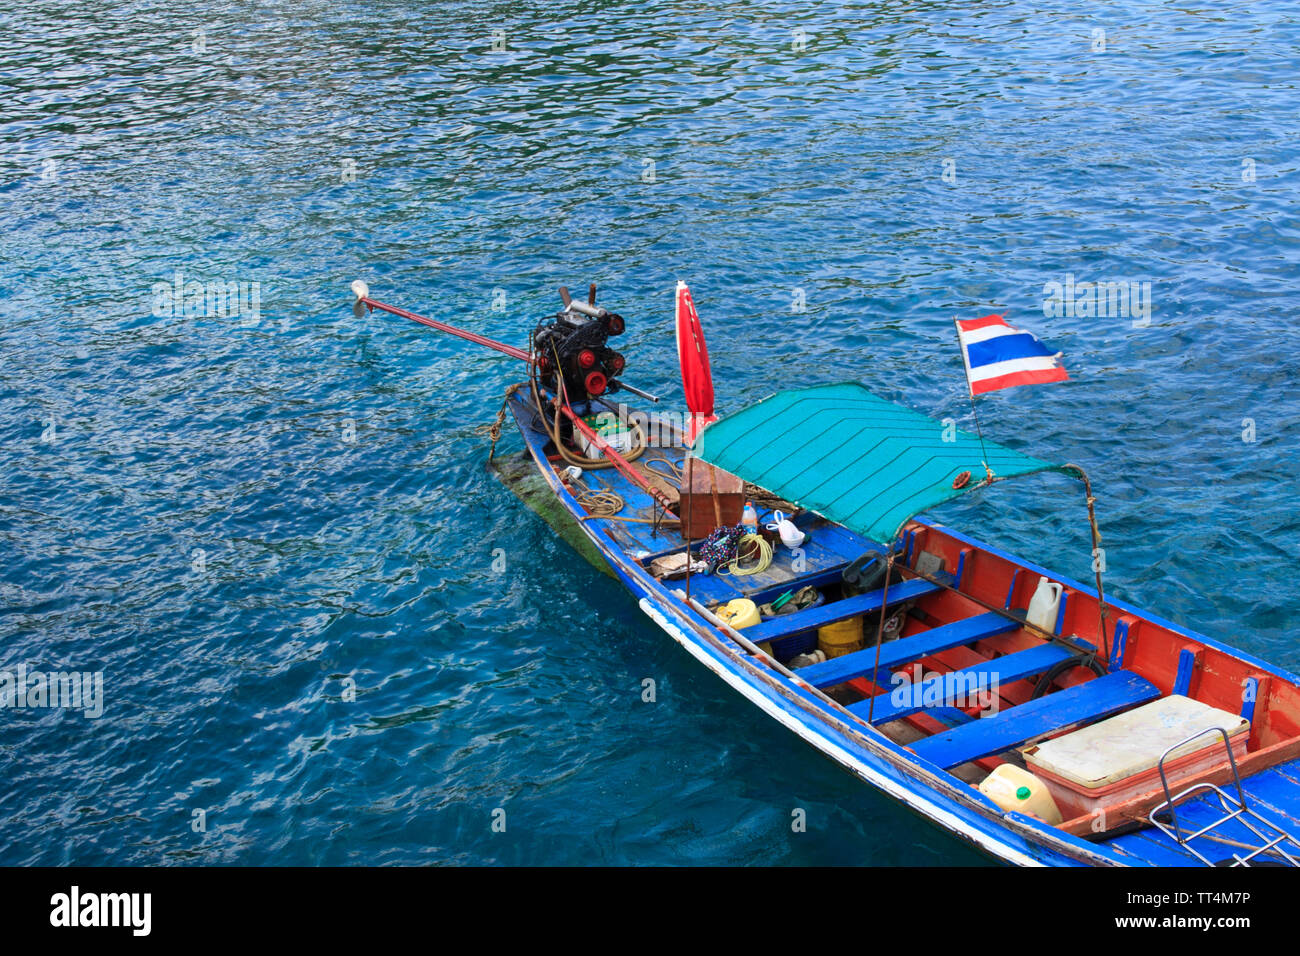 Traditional Thai longtail boat - Stock Image